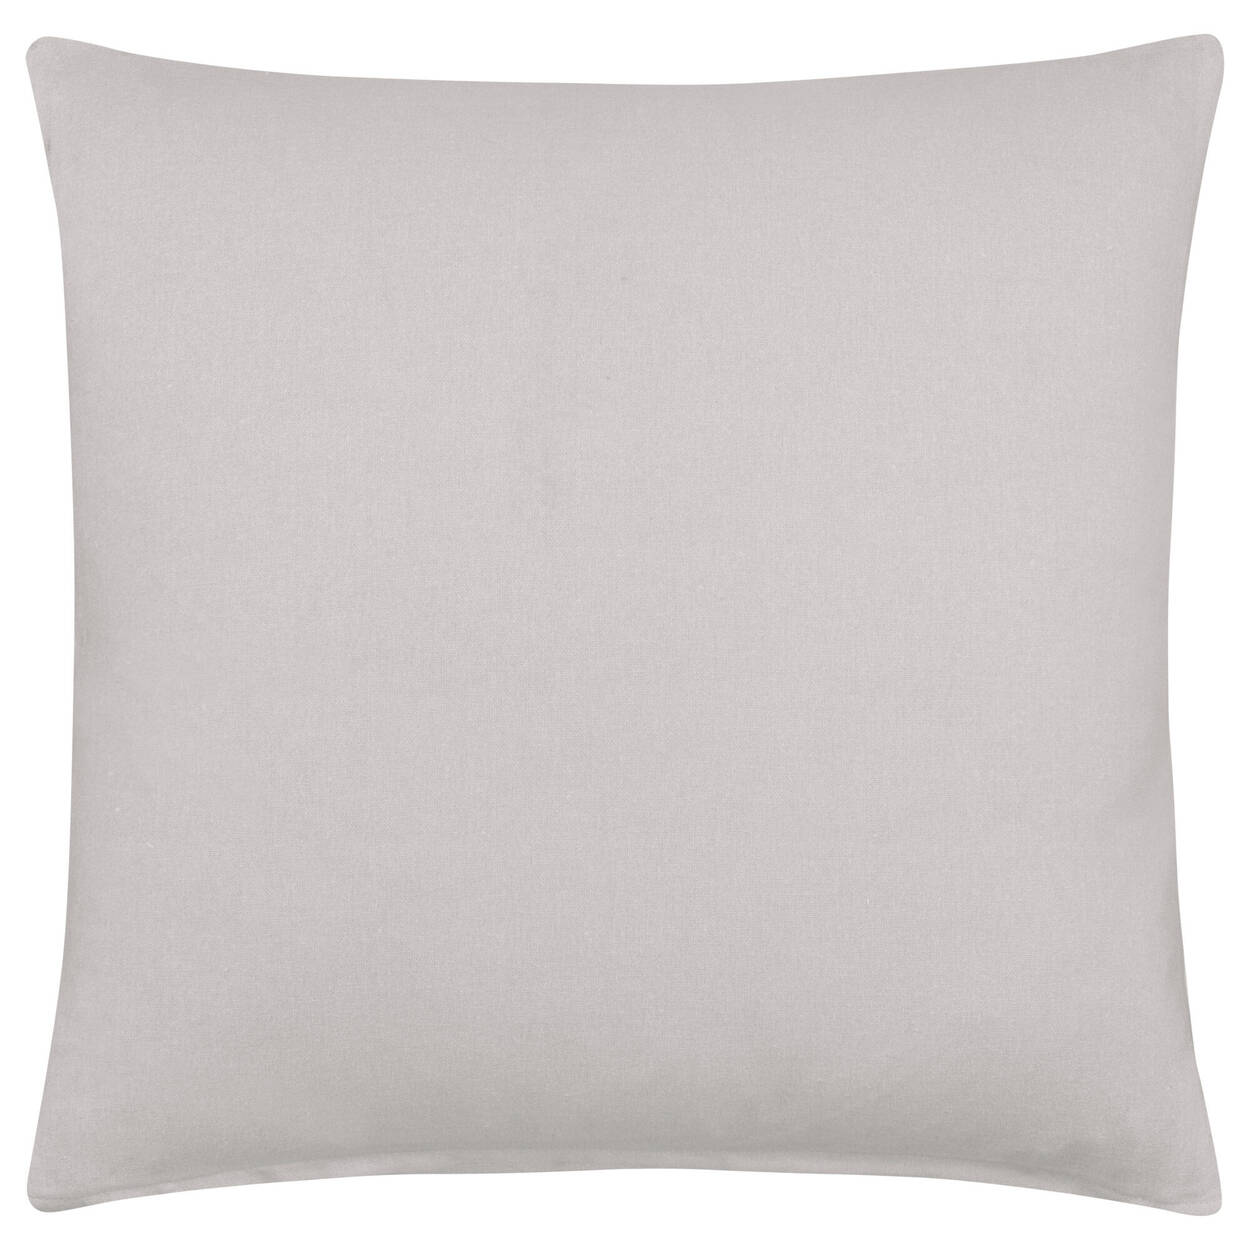 "Fidel Decorative Pillow Cover 18"" x 18"""